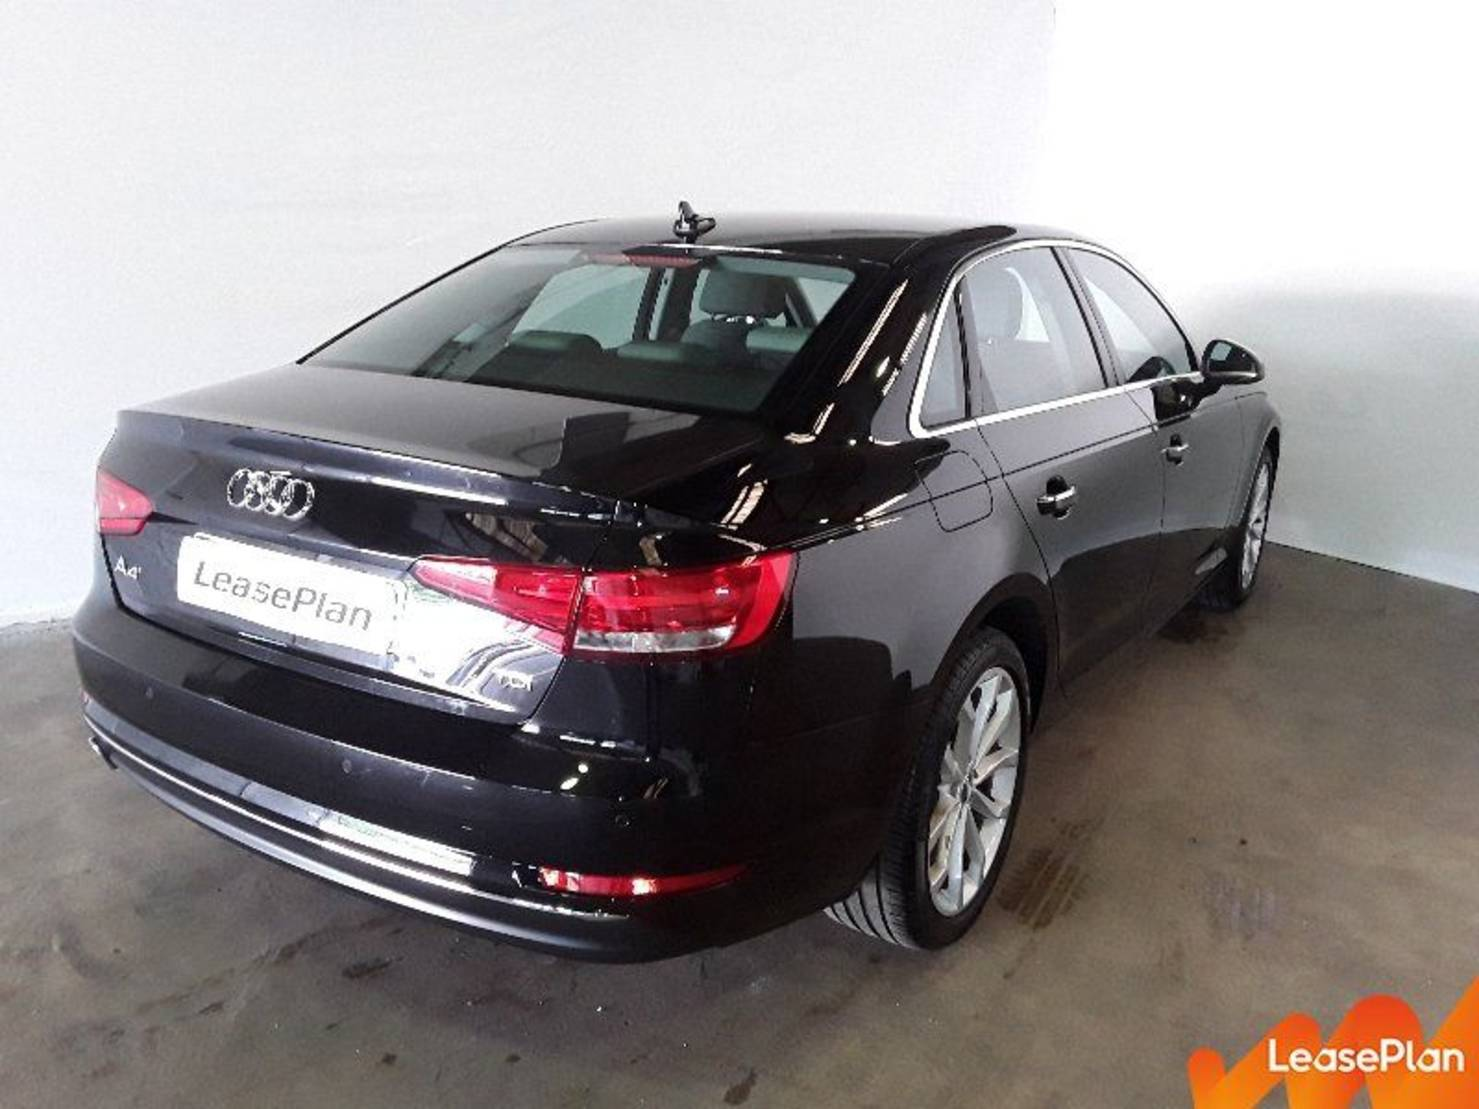 Audi A4 2.0 TDI 150 S tronic 7, Design Luxe detail2